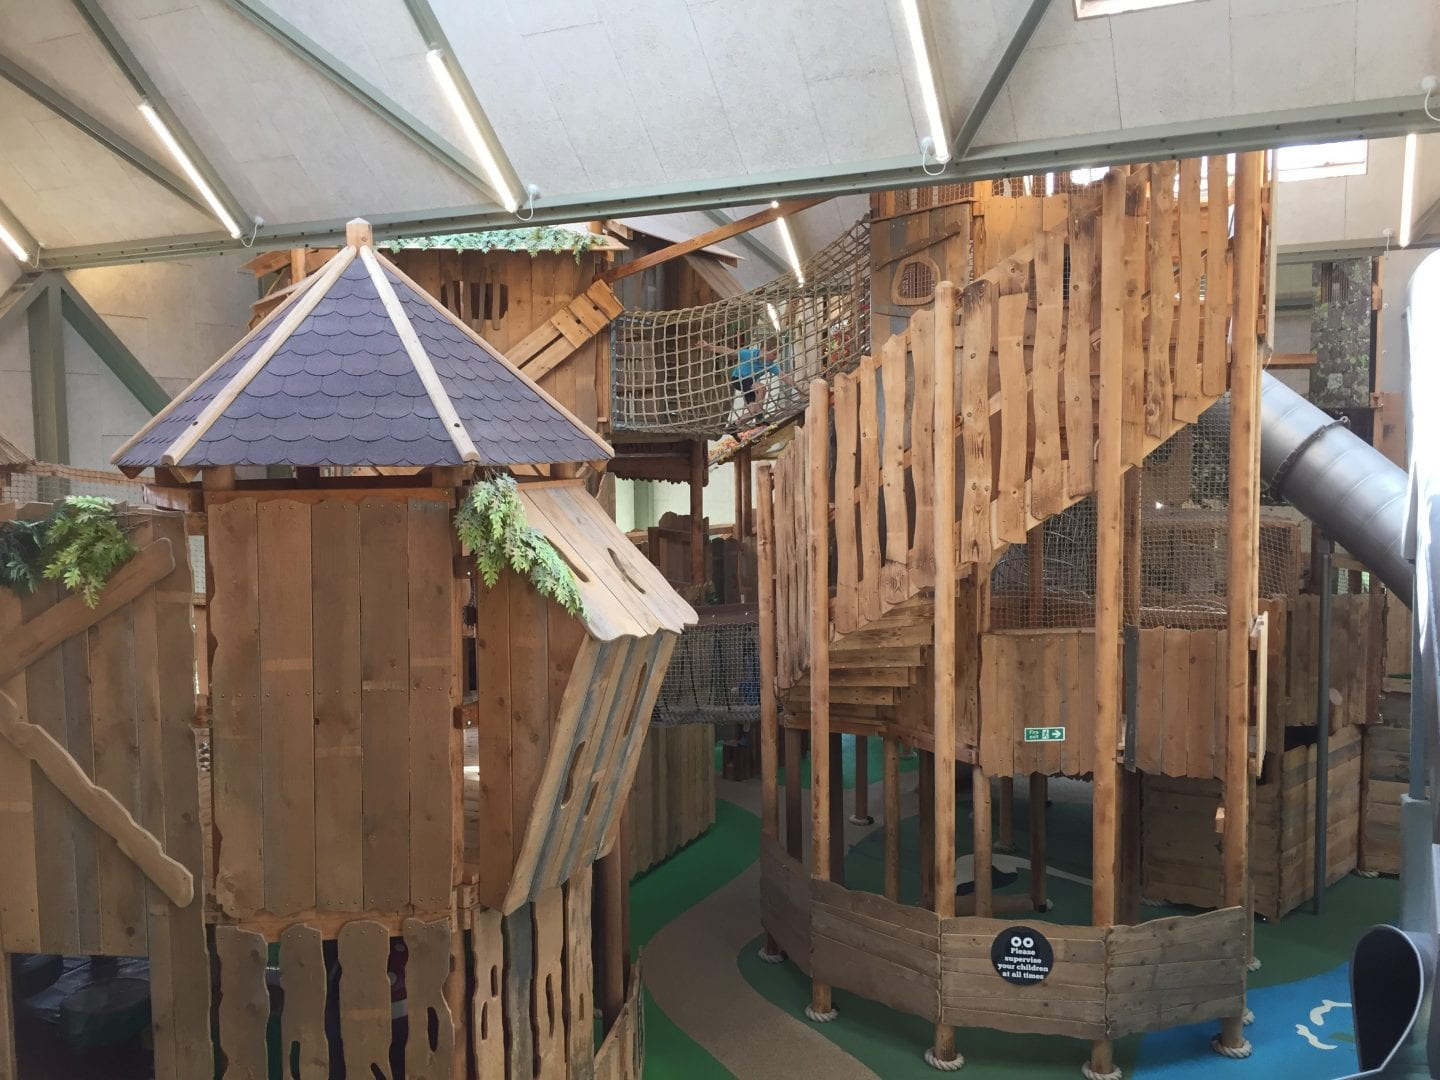 the Hootz House indoor play area at Pensthorpe Natural Park